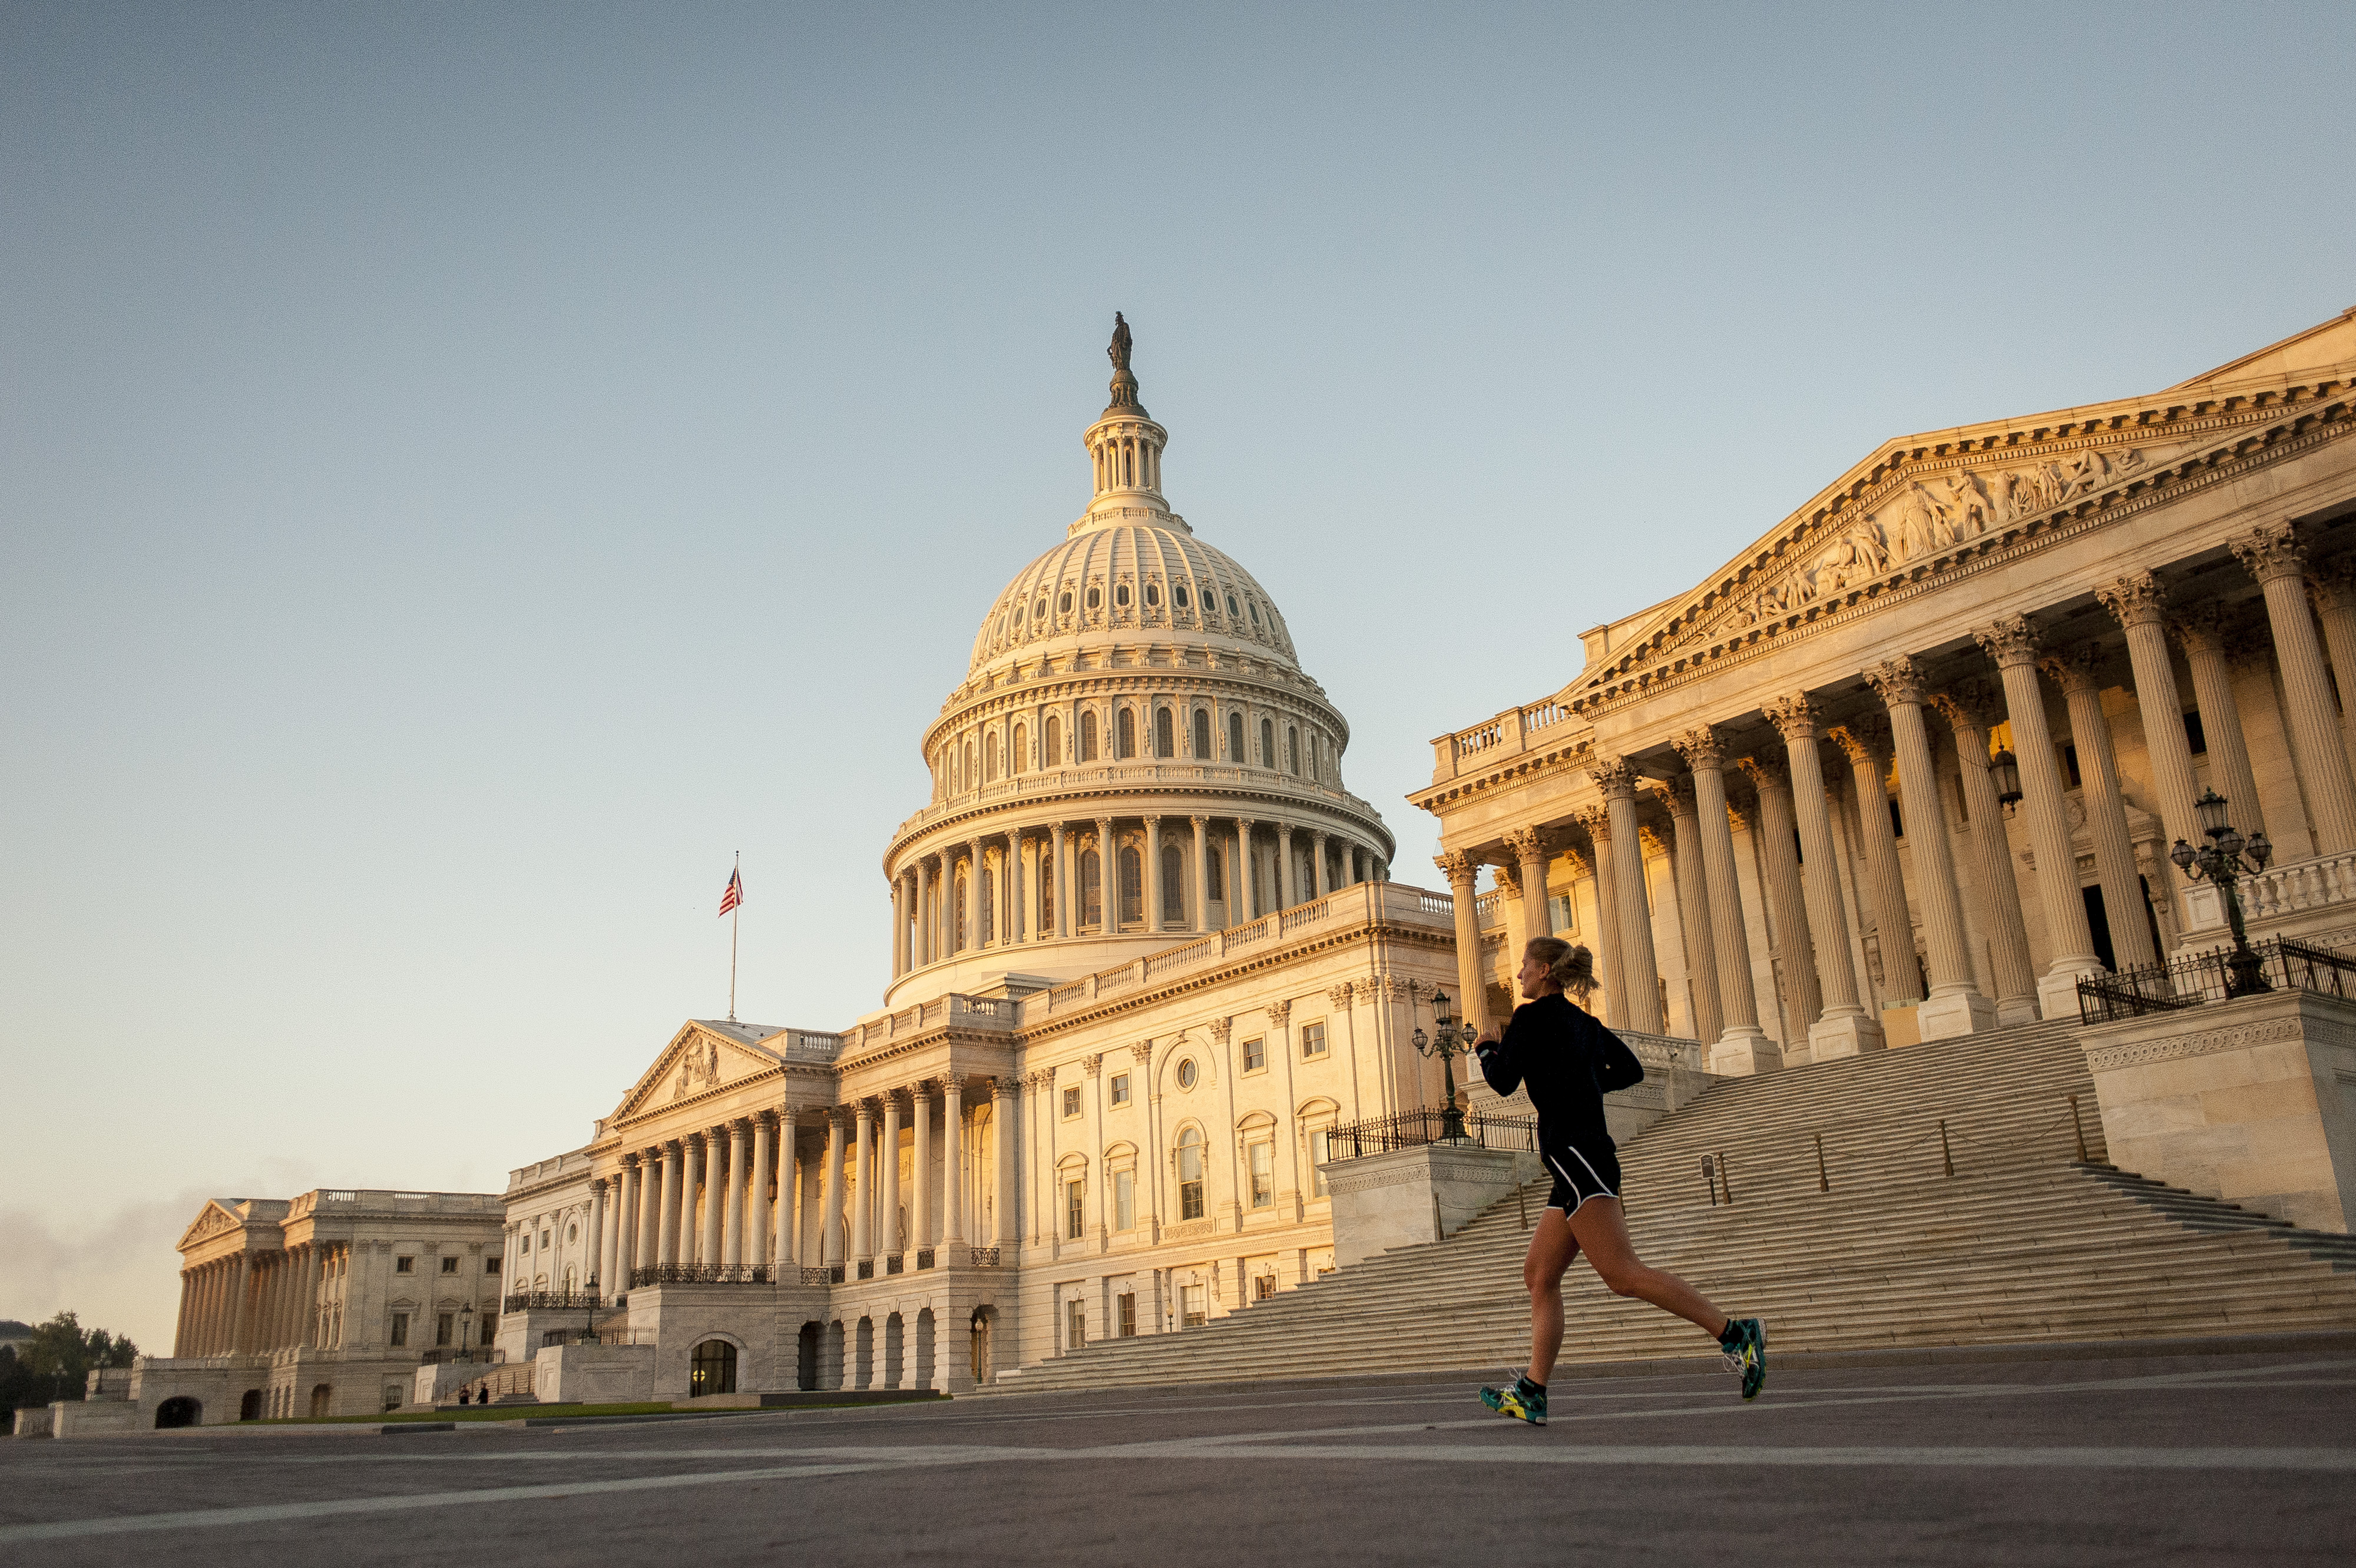 A jogger runs past the United States Capitol building at sunrise in Washington on Tuesday, October 15, 2013.